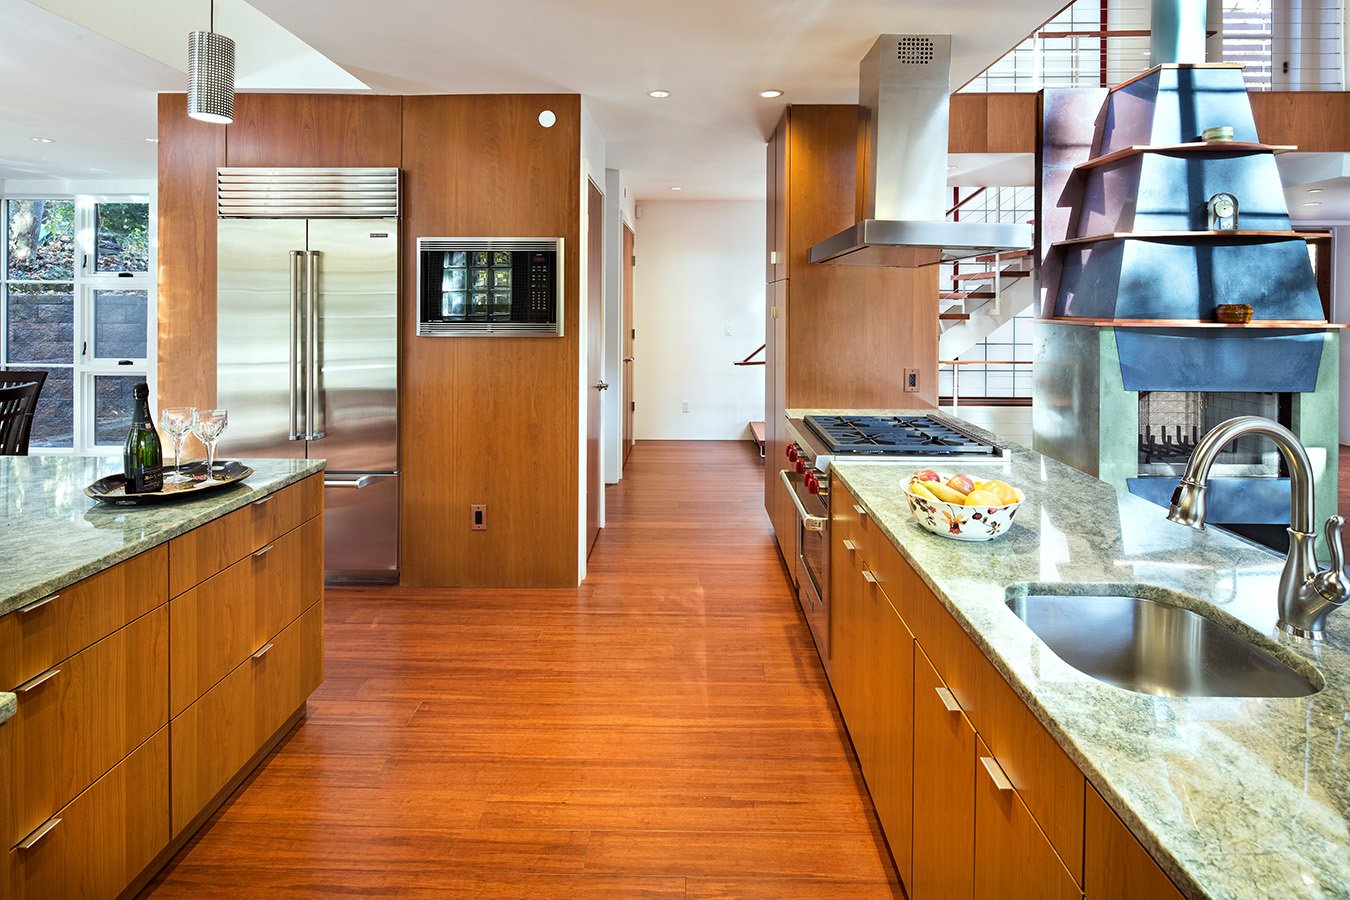 Kitchen, Refrigerator, Cooktops, Range, Range Hood, Microwave, Dishwasher, Granite, Wood, Medium Hardwood, Mosaic Tile, Ceiling, Pendant, Undermount, and Concrete Kitchen  Best Kitchen Microwave Wood Pendant Medium Hardwood Photos from Home for Sale: Takoma Park House